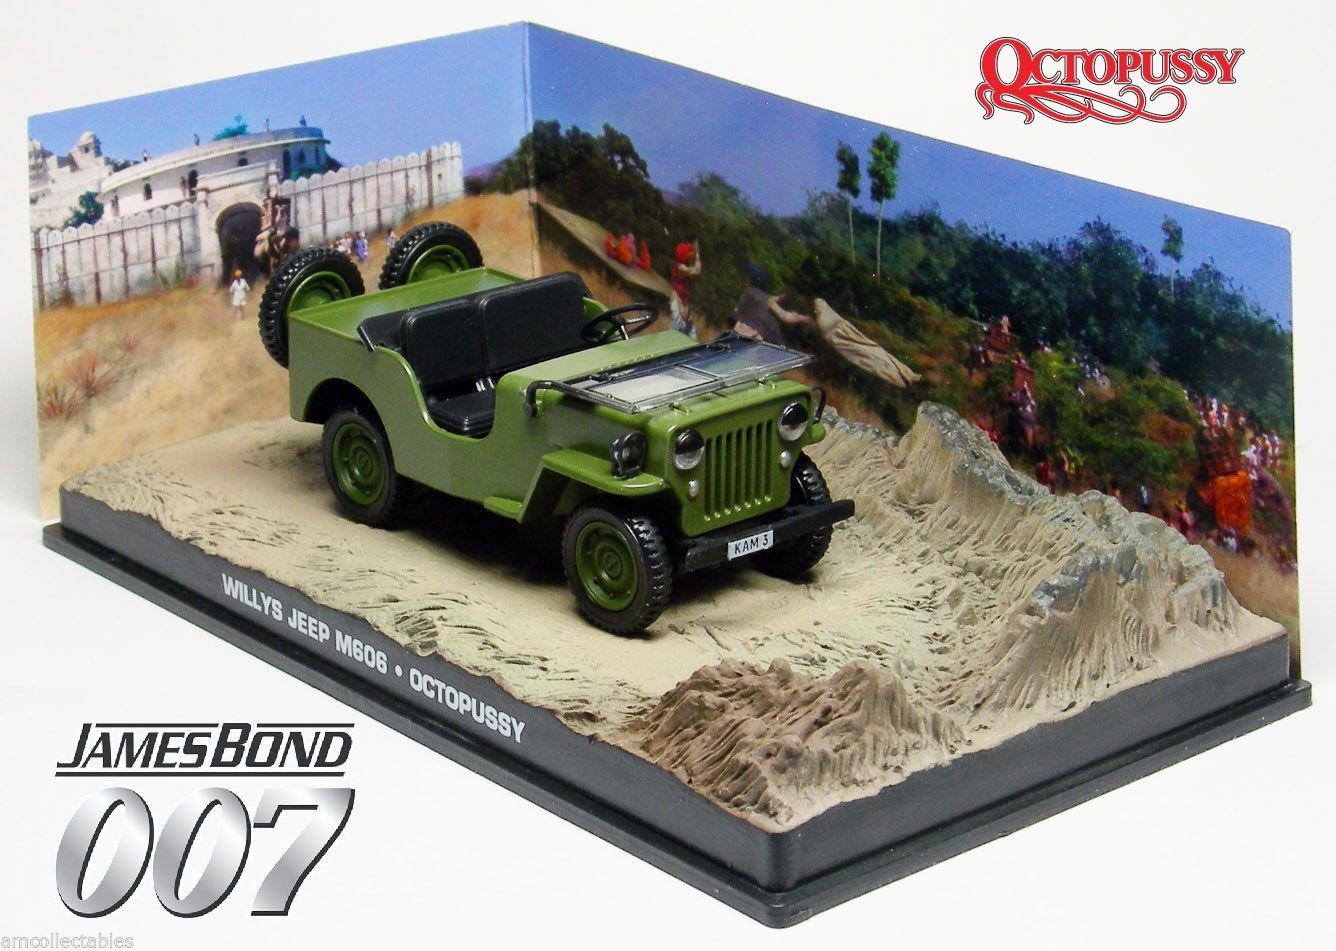 Photo du produit JAMES BOND OCTOPUSSY 1/43 1953 WILLY'S JEEP METAL